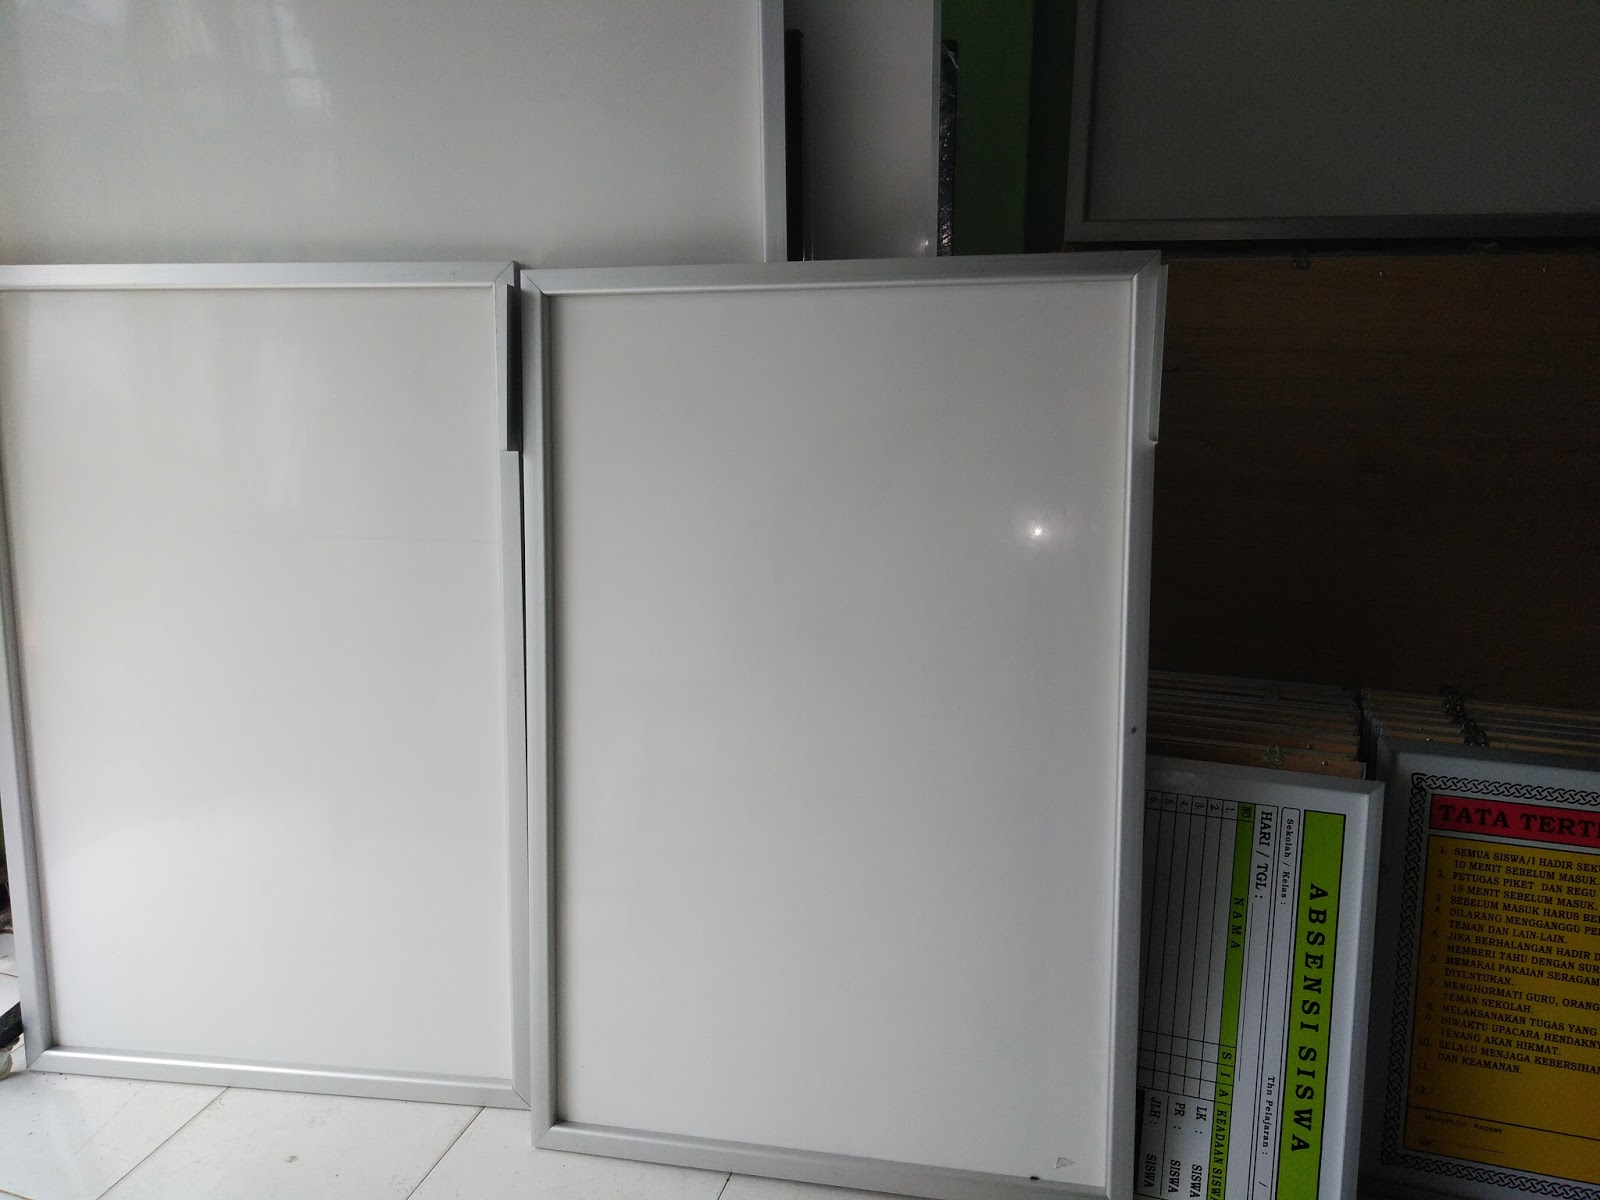 PAPAN DATA SEKOLAH MEDANACEH Papan Tulis Whiteboard